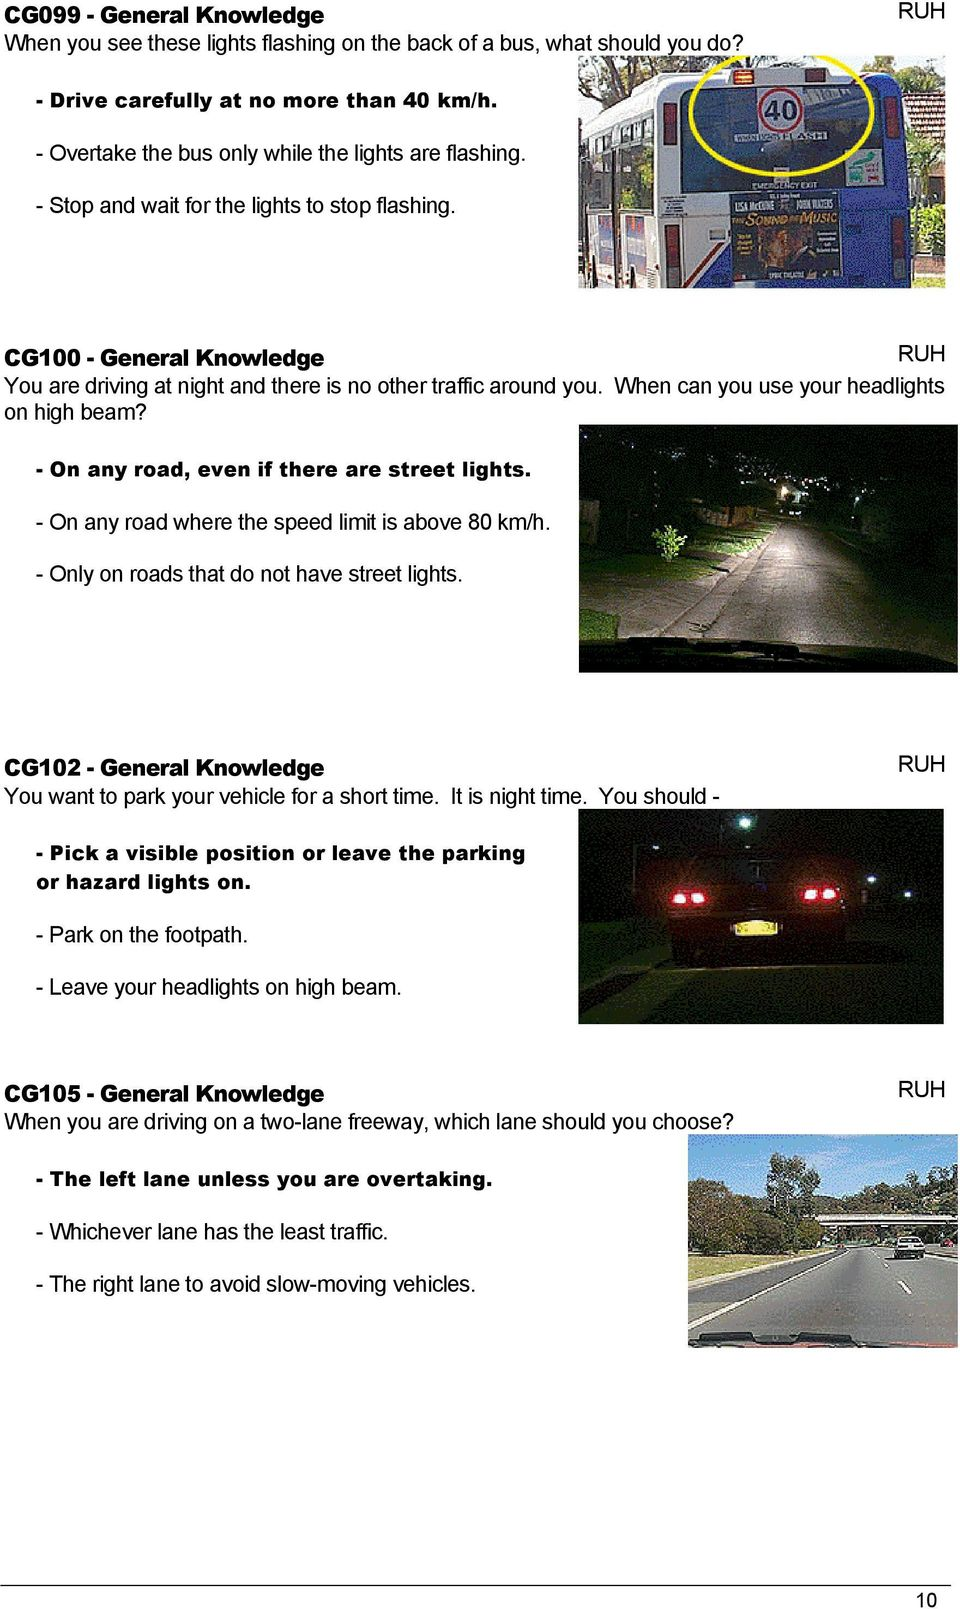 - On any road, even if there are street lights. - On any road where the speed limit is above 80 km/h. - Only on roads that do not have street lights.